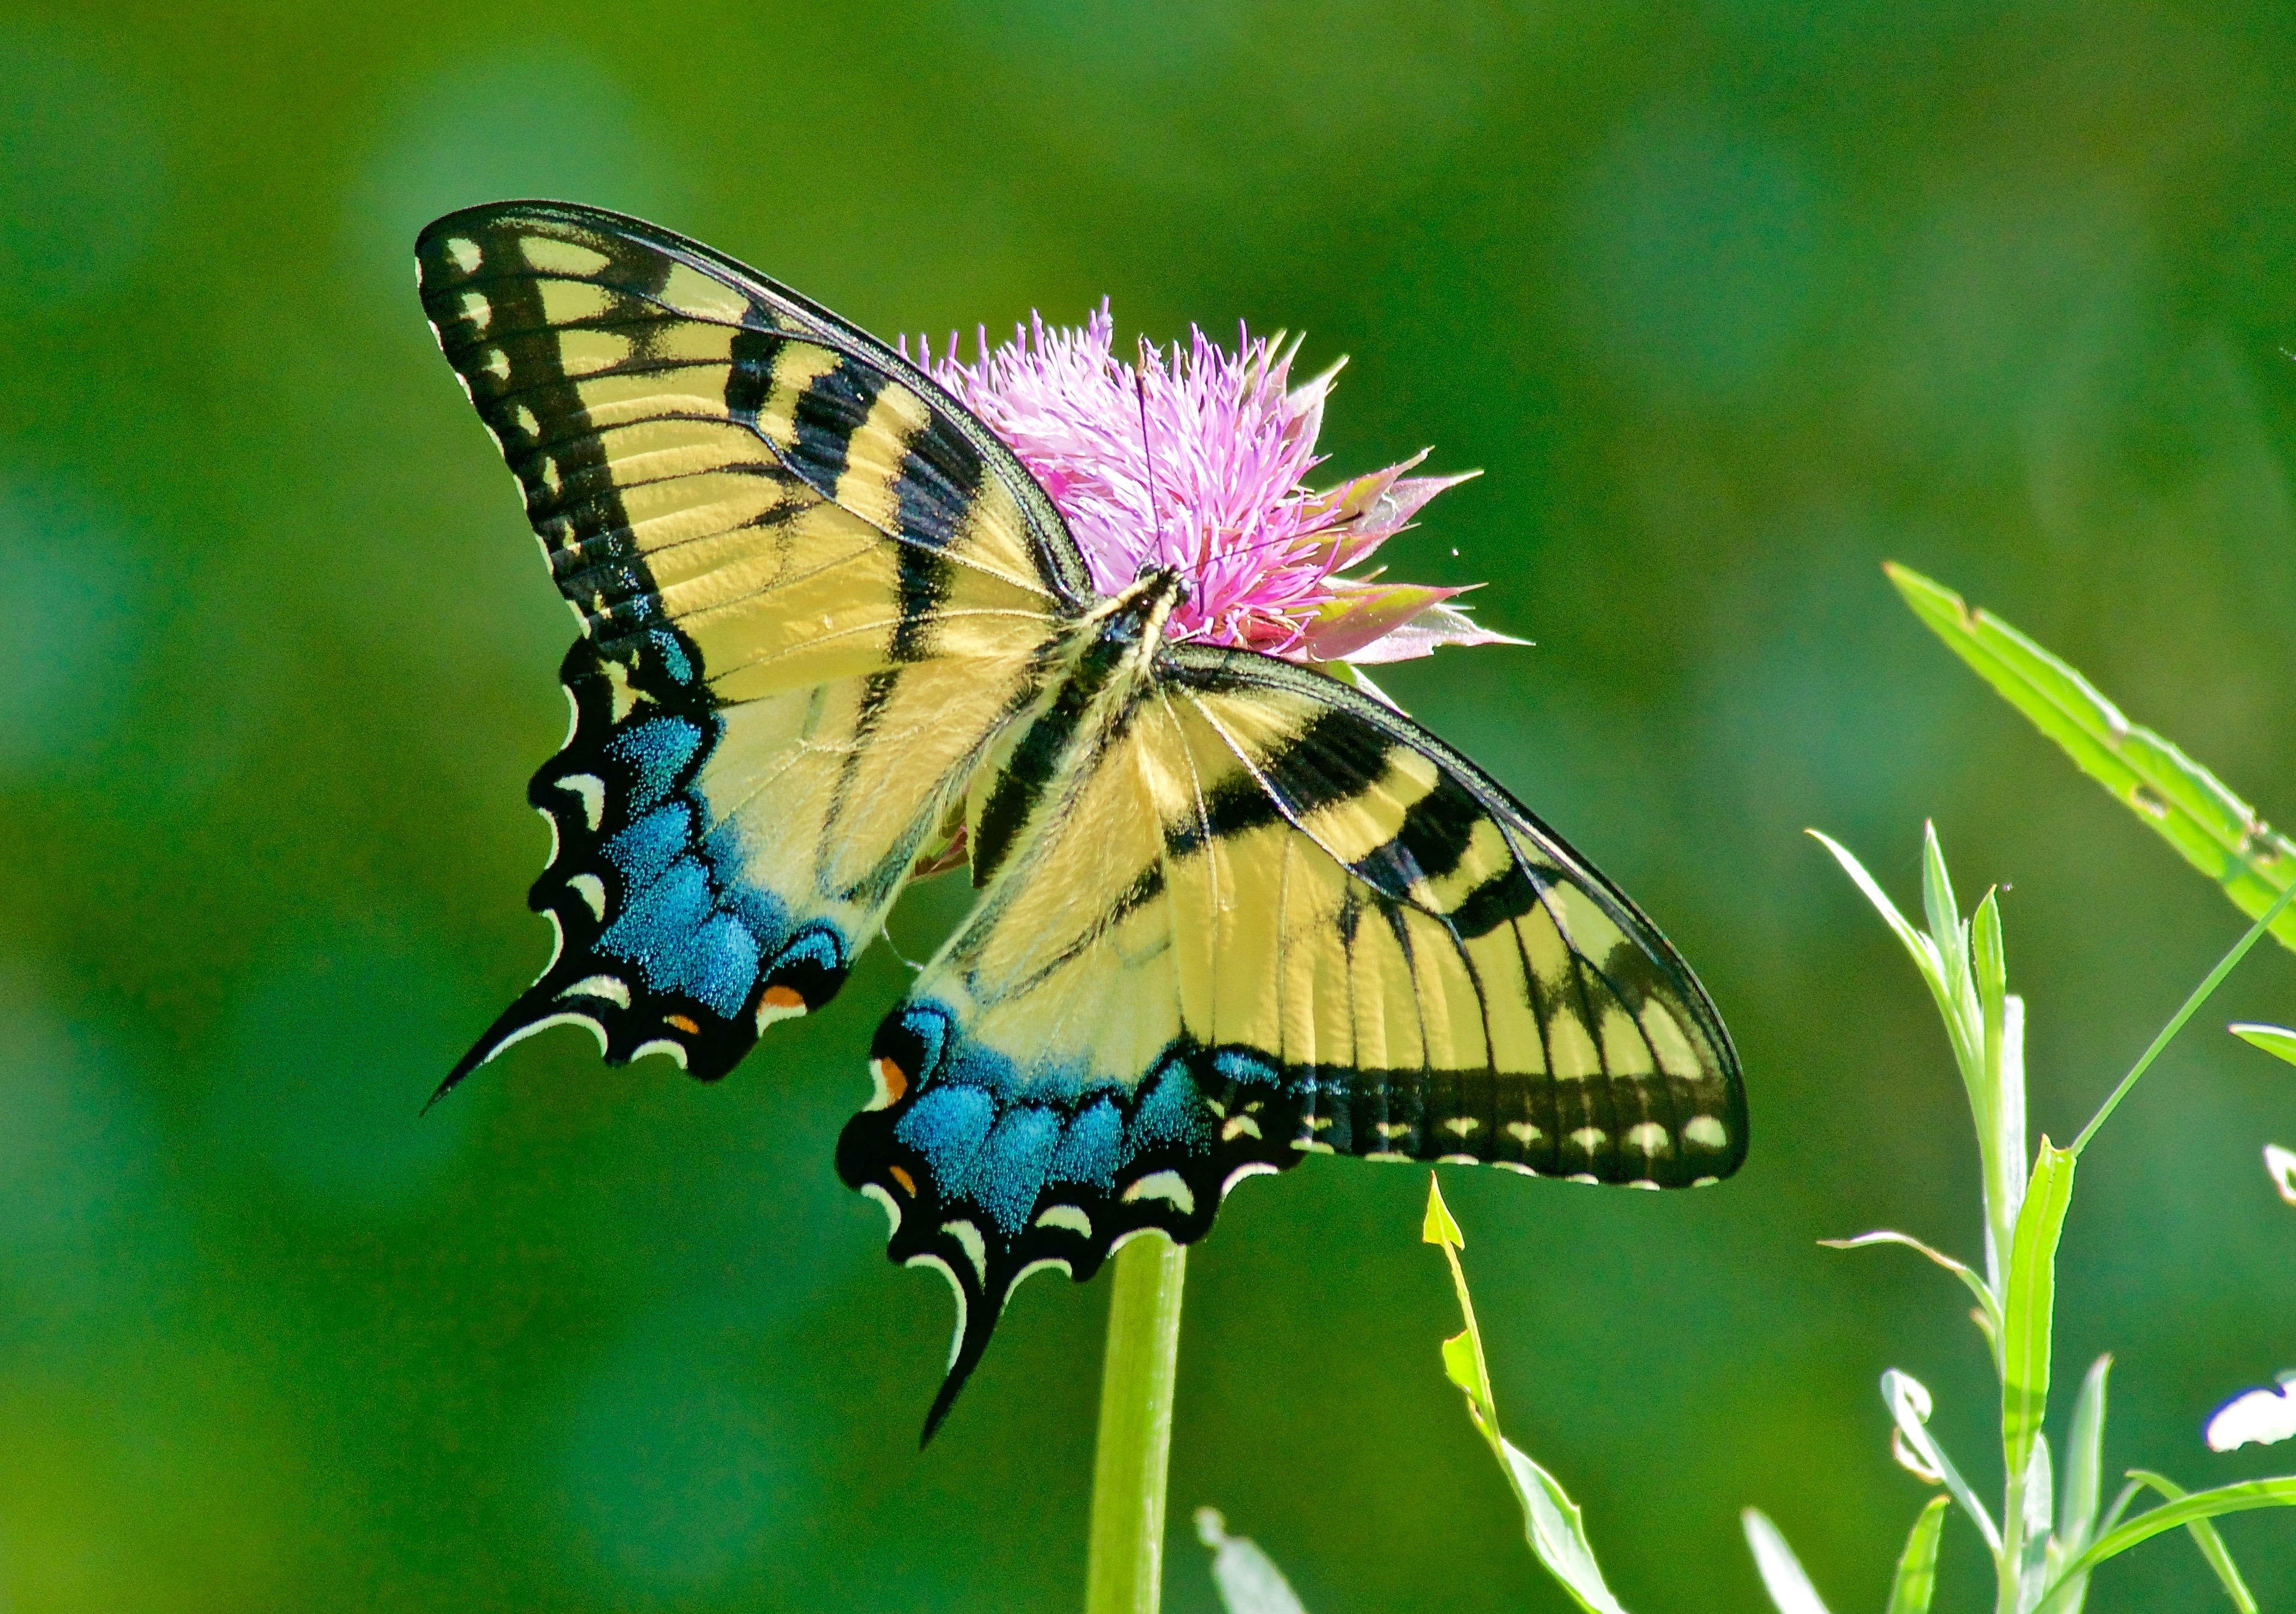 Western Tiger Swallowtail Butterfly (Papilio Rutulus) on Musk Thistle